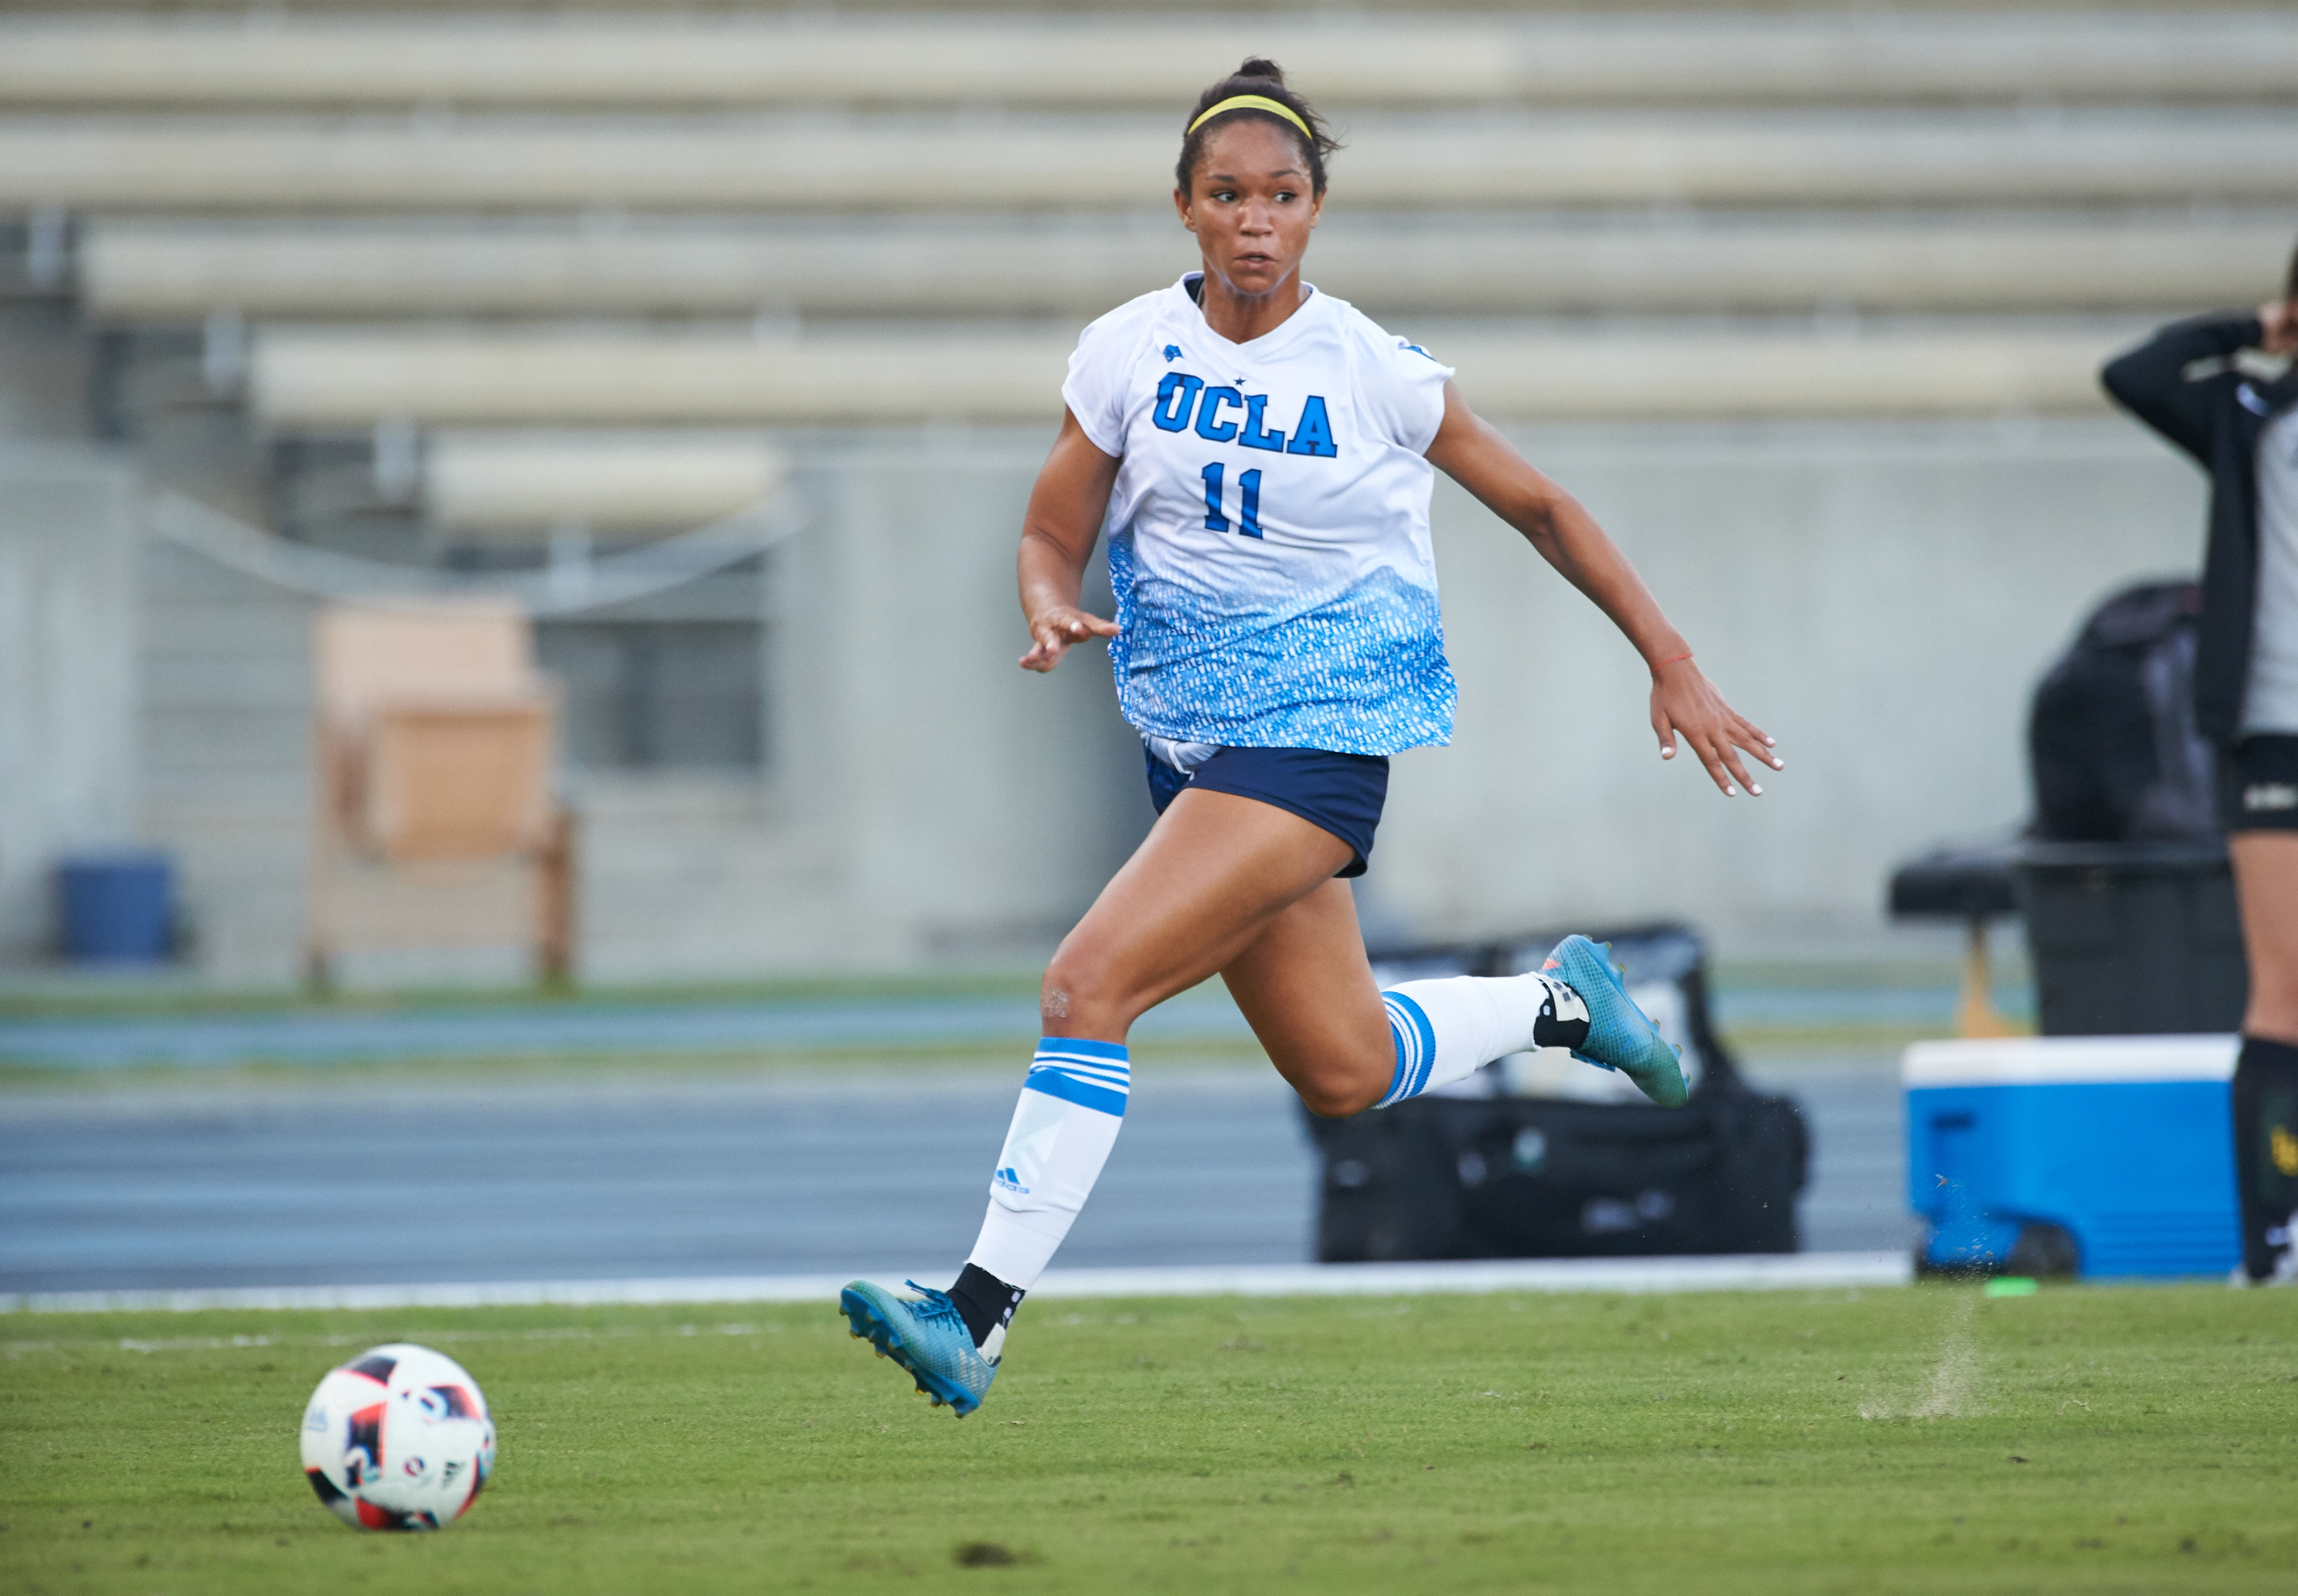 womens non conference soccer action - HD3600×2501